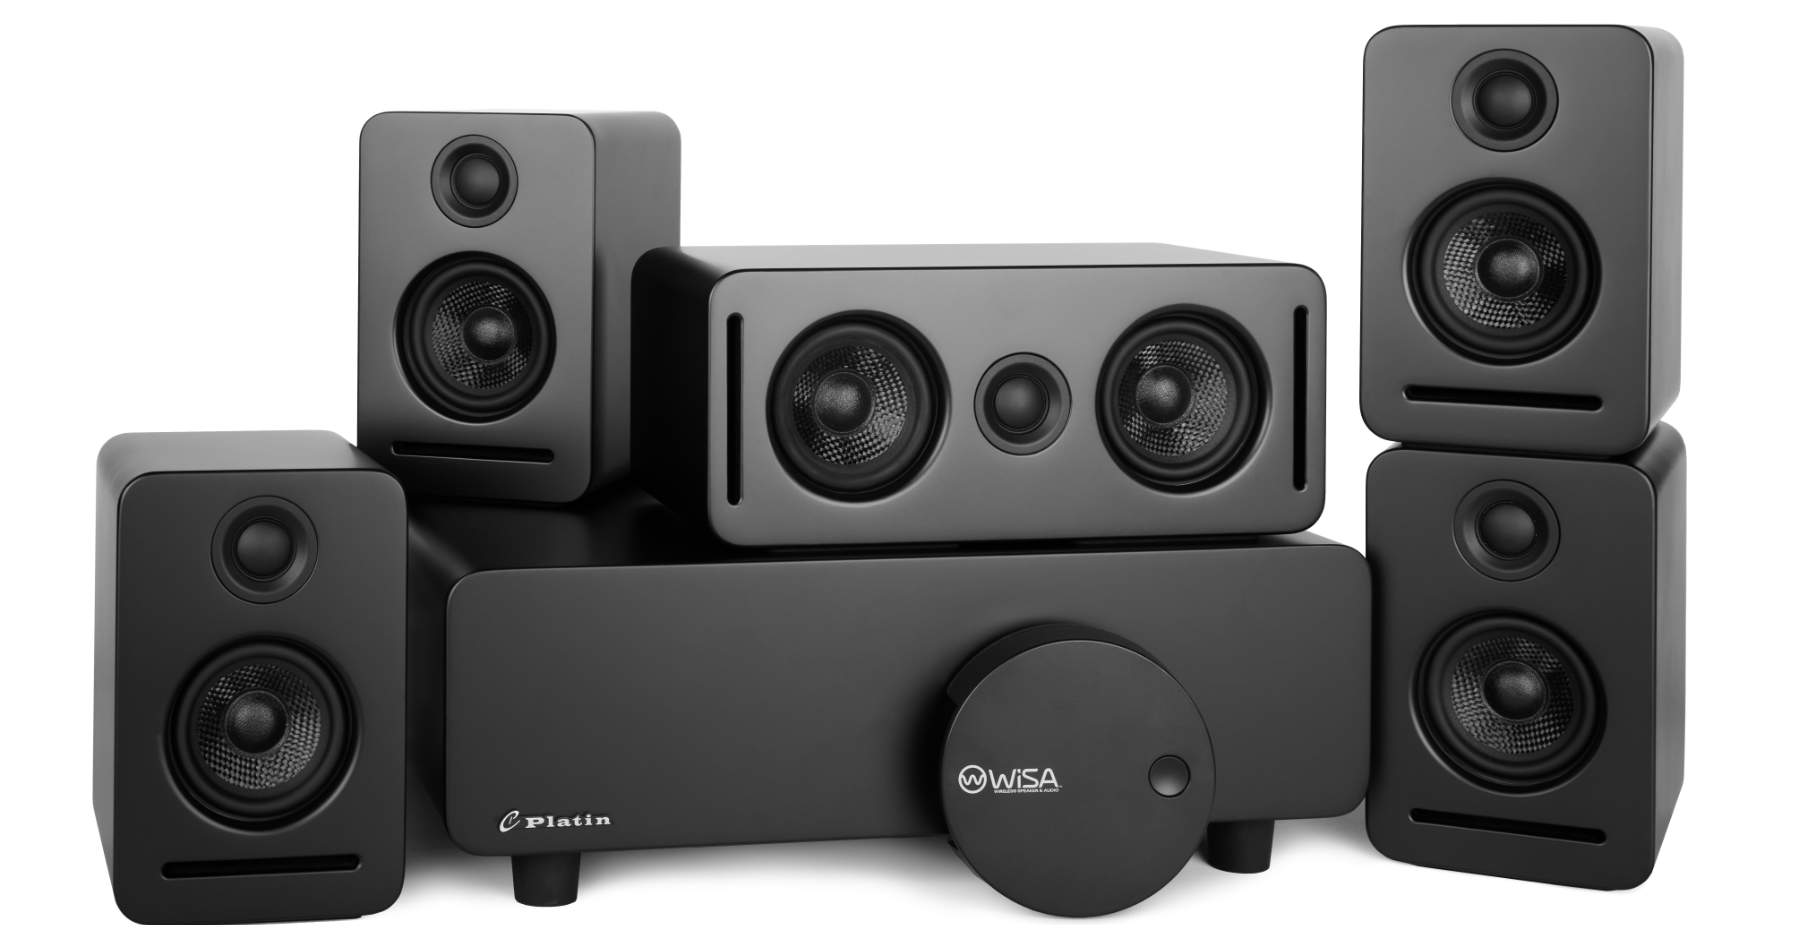 Platin Monaco 5.1 sound system with subwoofer, center-channel speaker, four satellite speakers, and WiSA SoundSend wireless audio transmitter